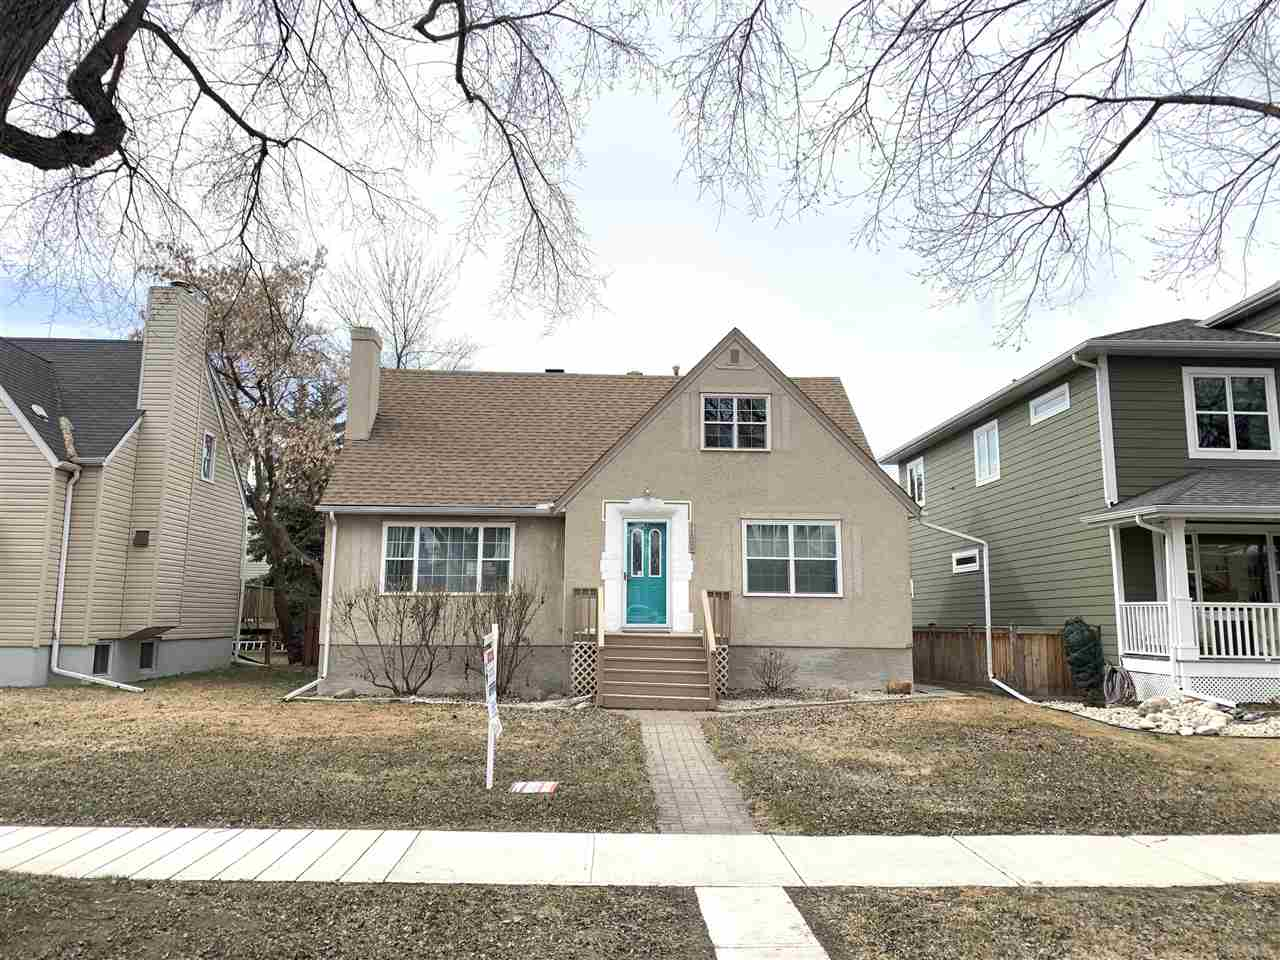 11026 126 Street, 4 bed, 2 bath, at $625,000